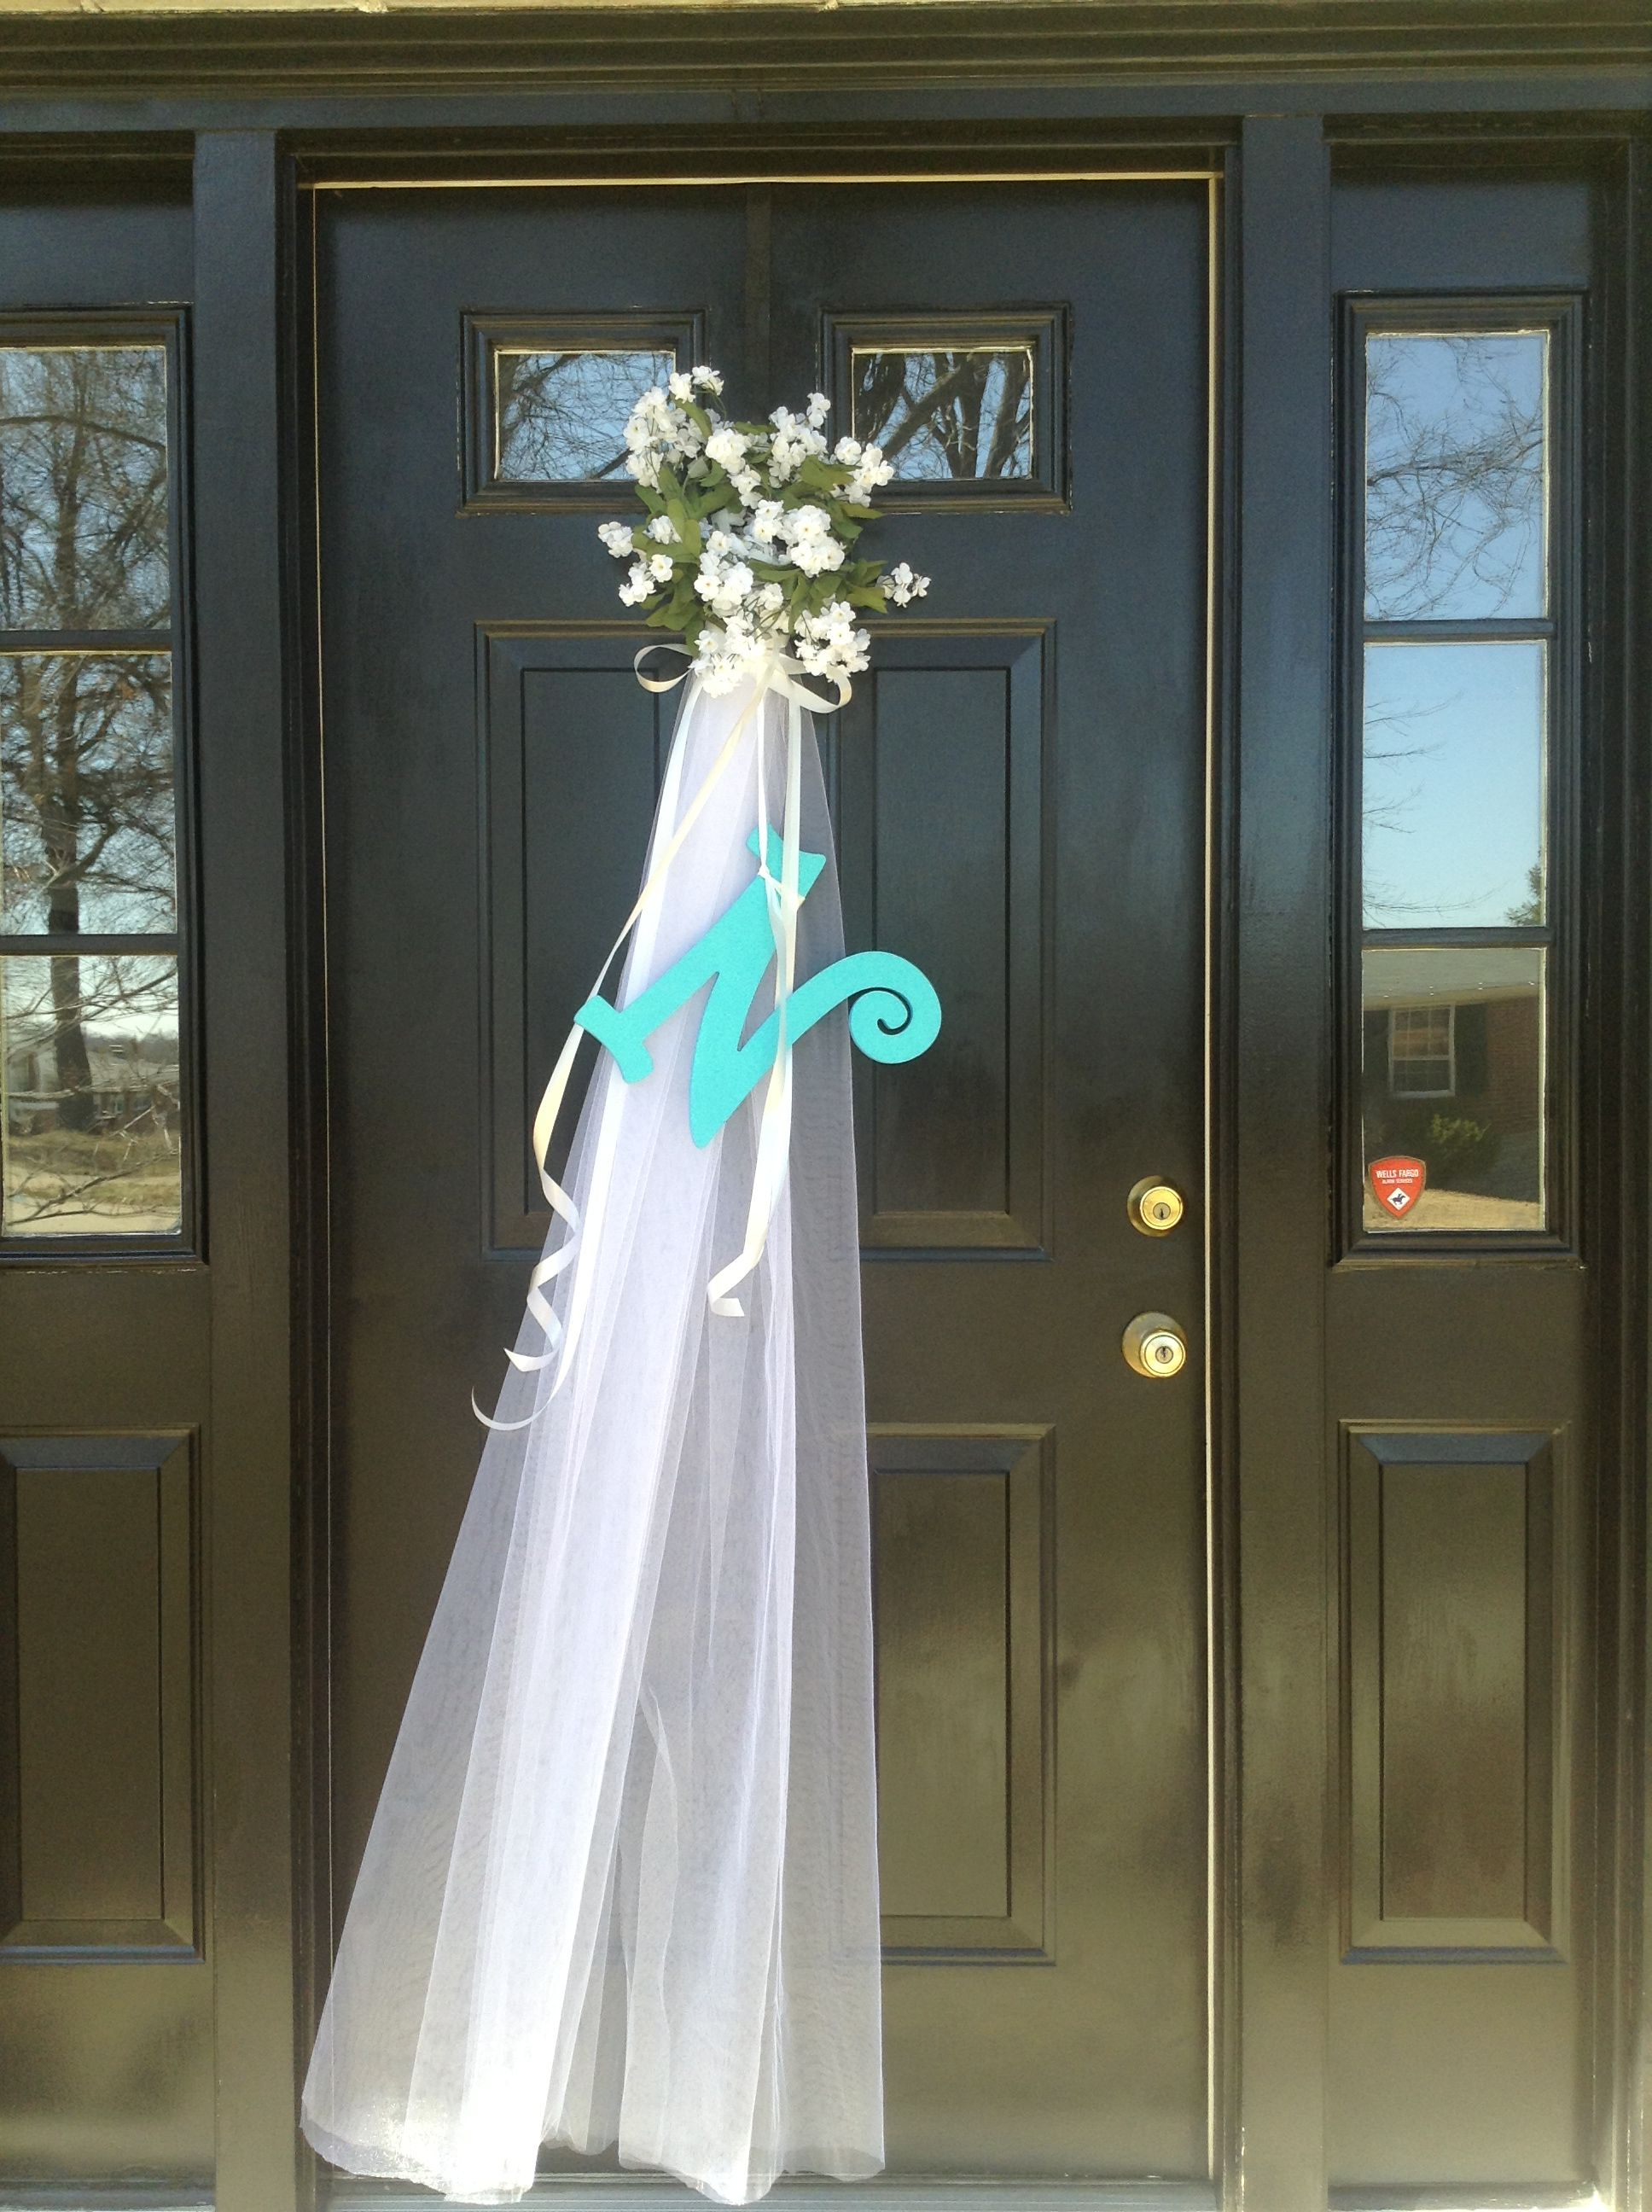 Front door decoration for bridal shower. | My front door ...